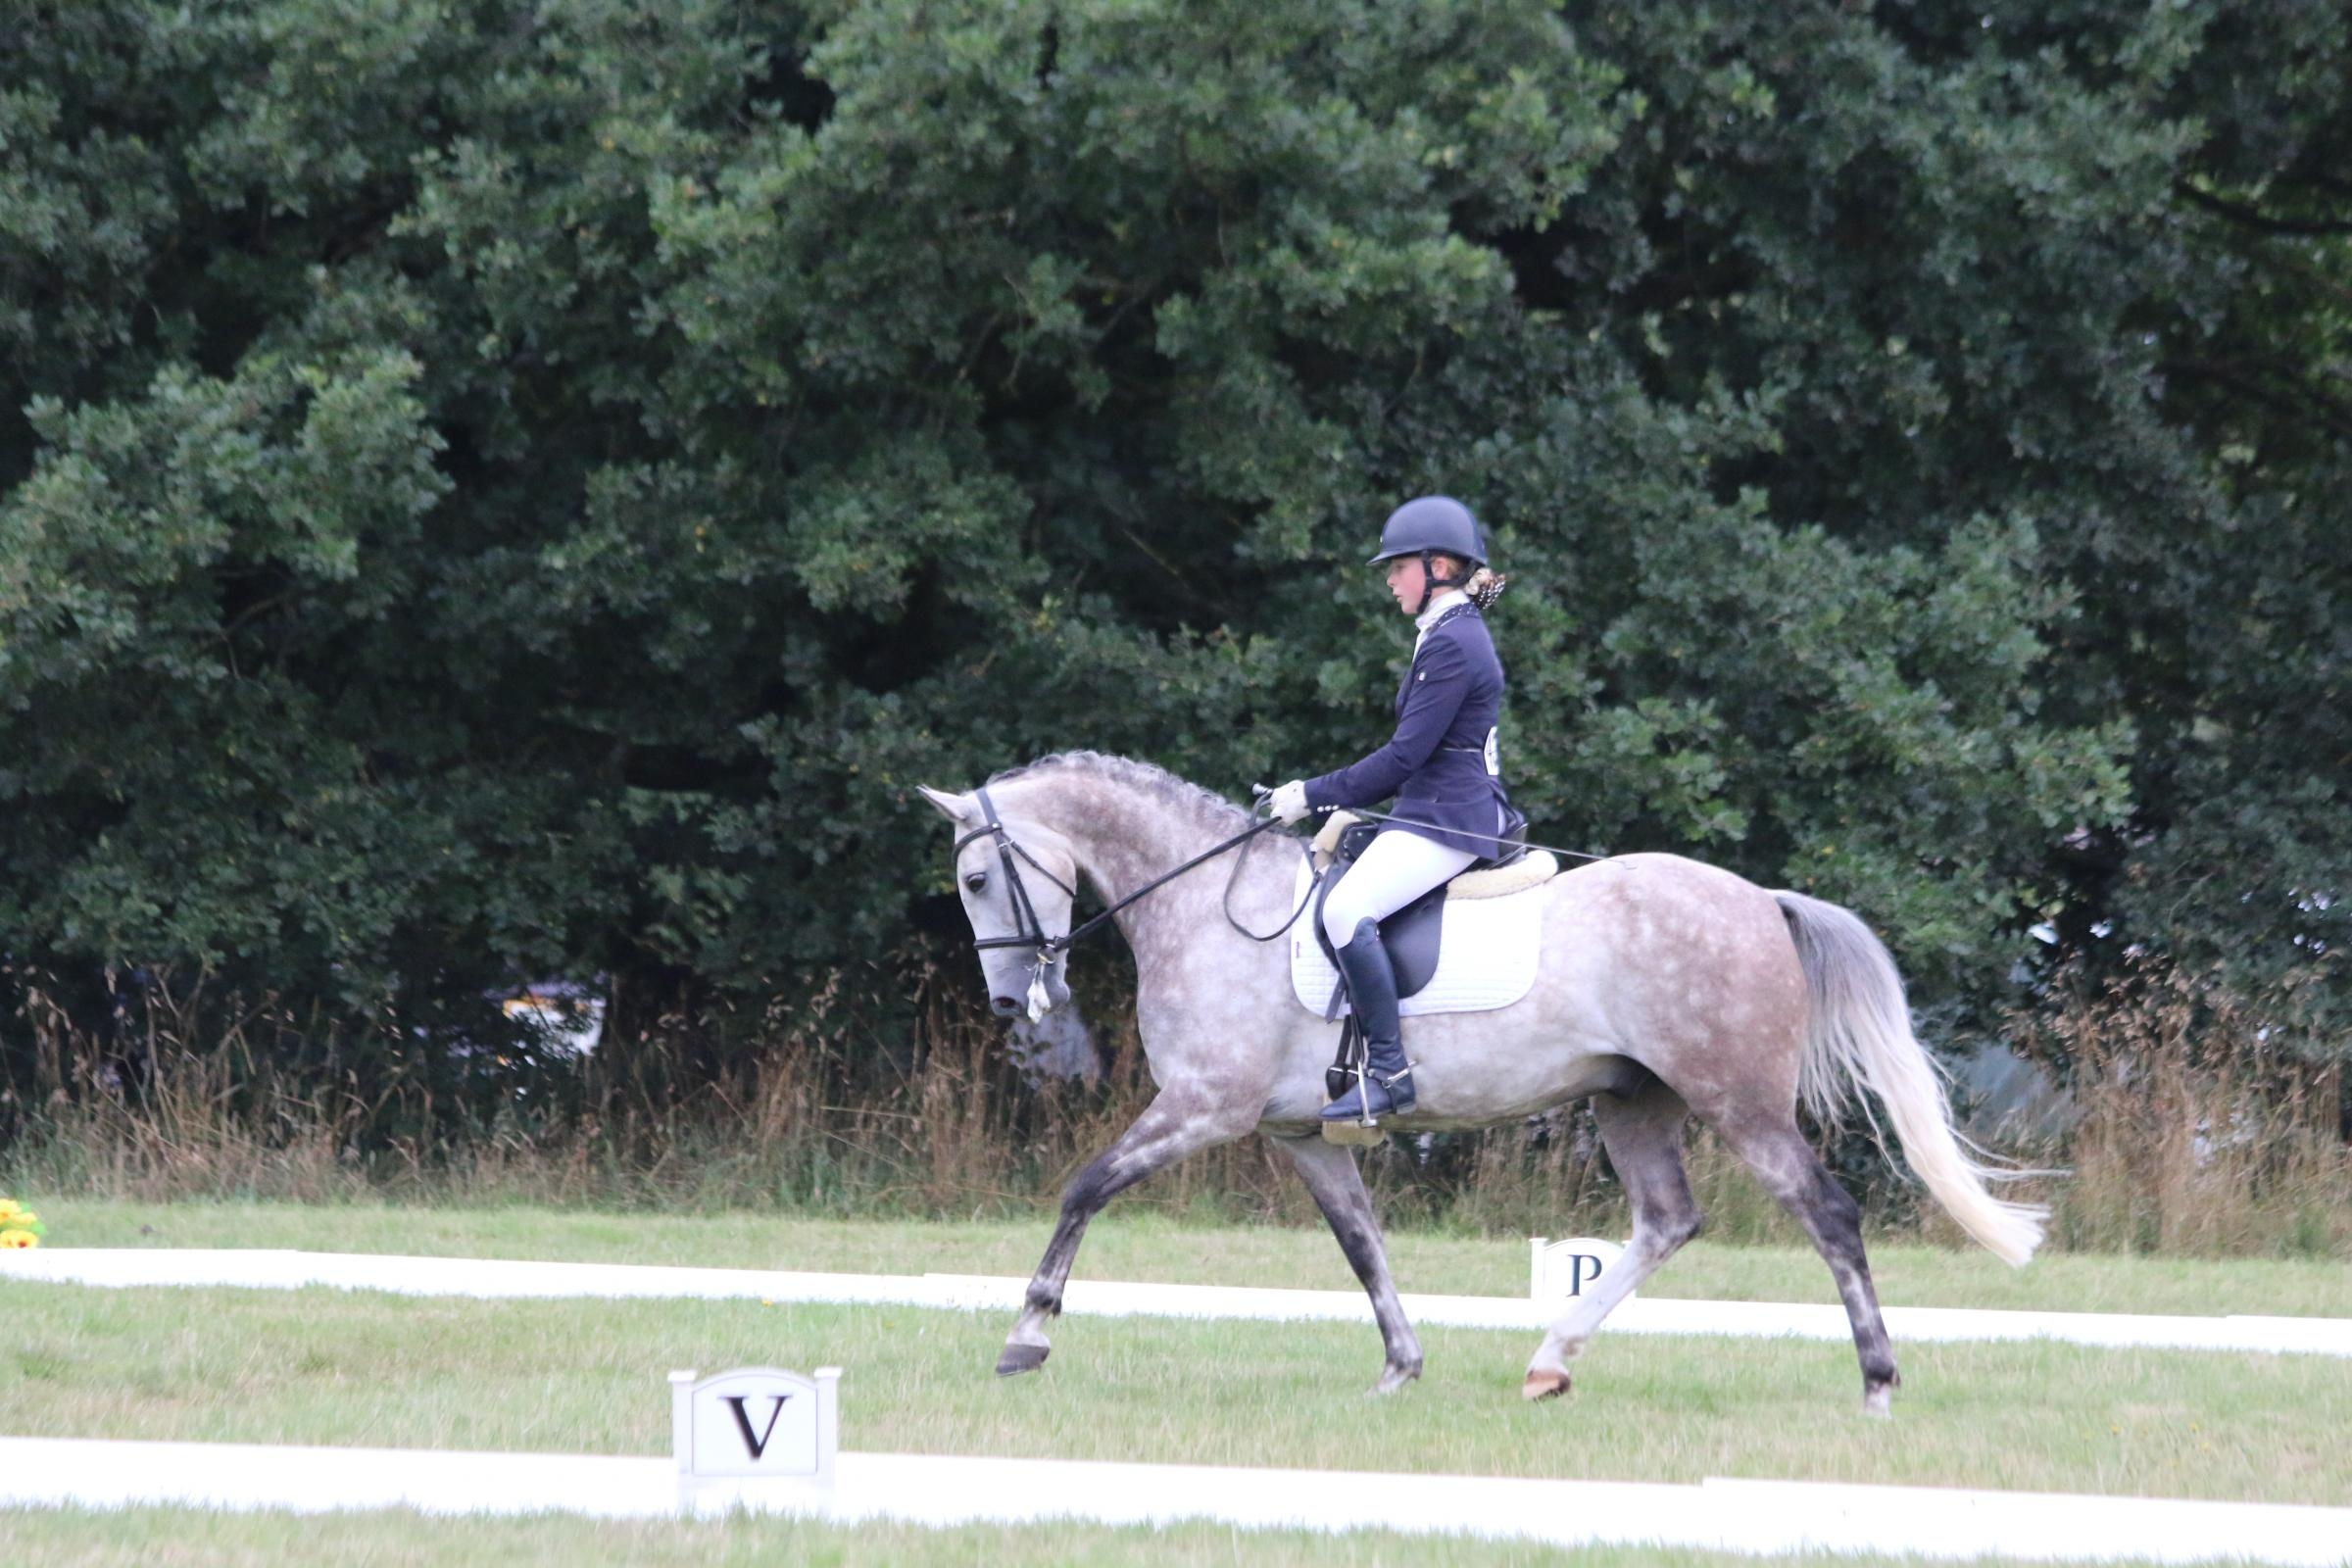 Dressage rider Emma Chinn, who lives near Ross-on-Wye, has qualified for a national dressage finals in Buckinghamshire